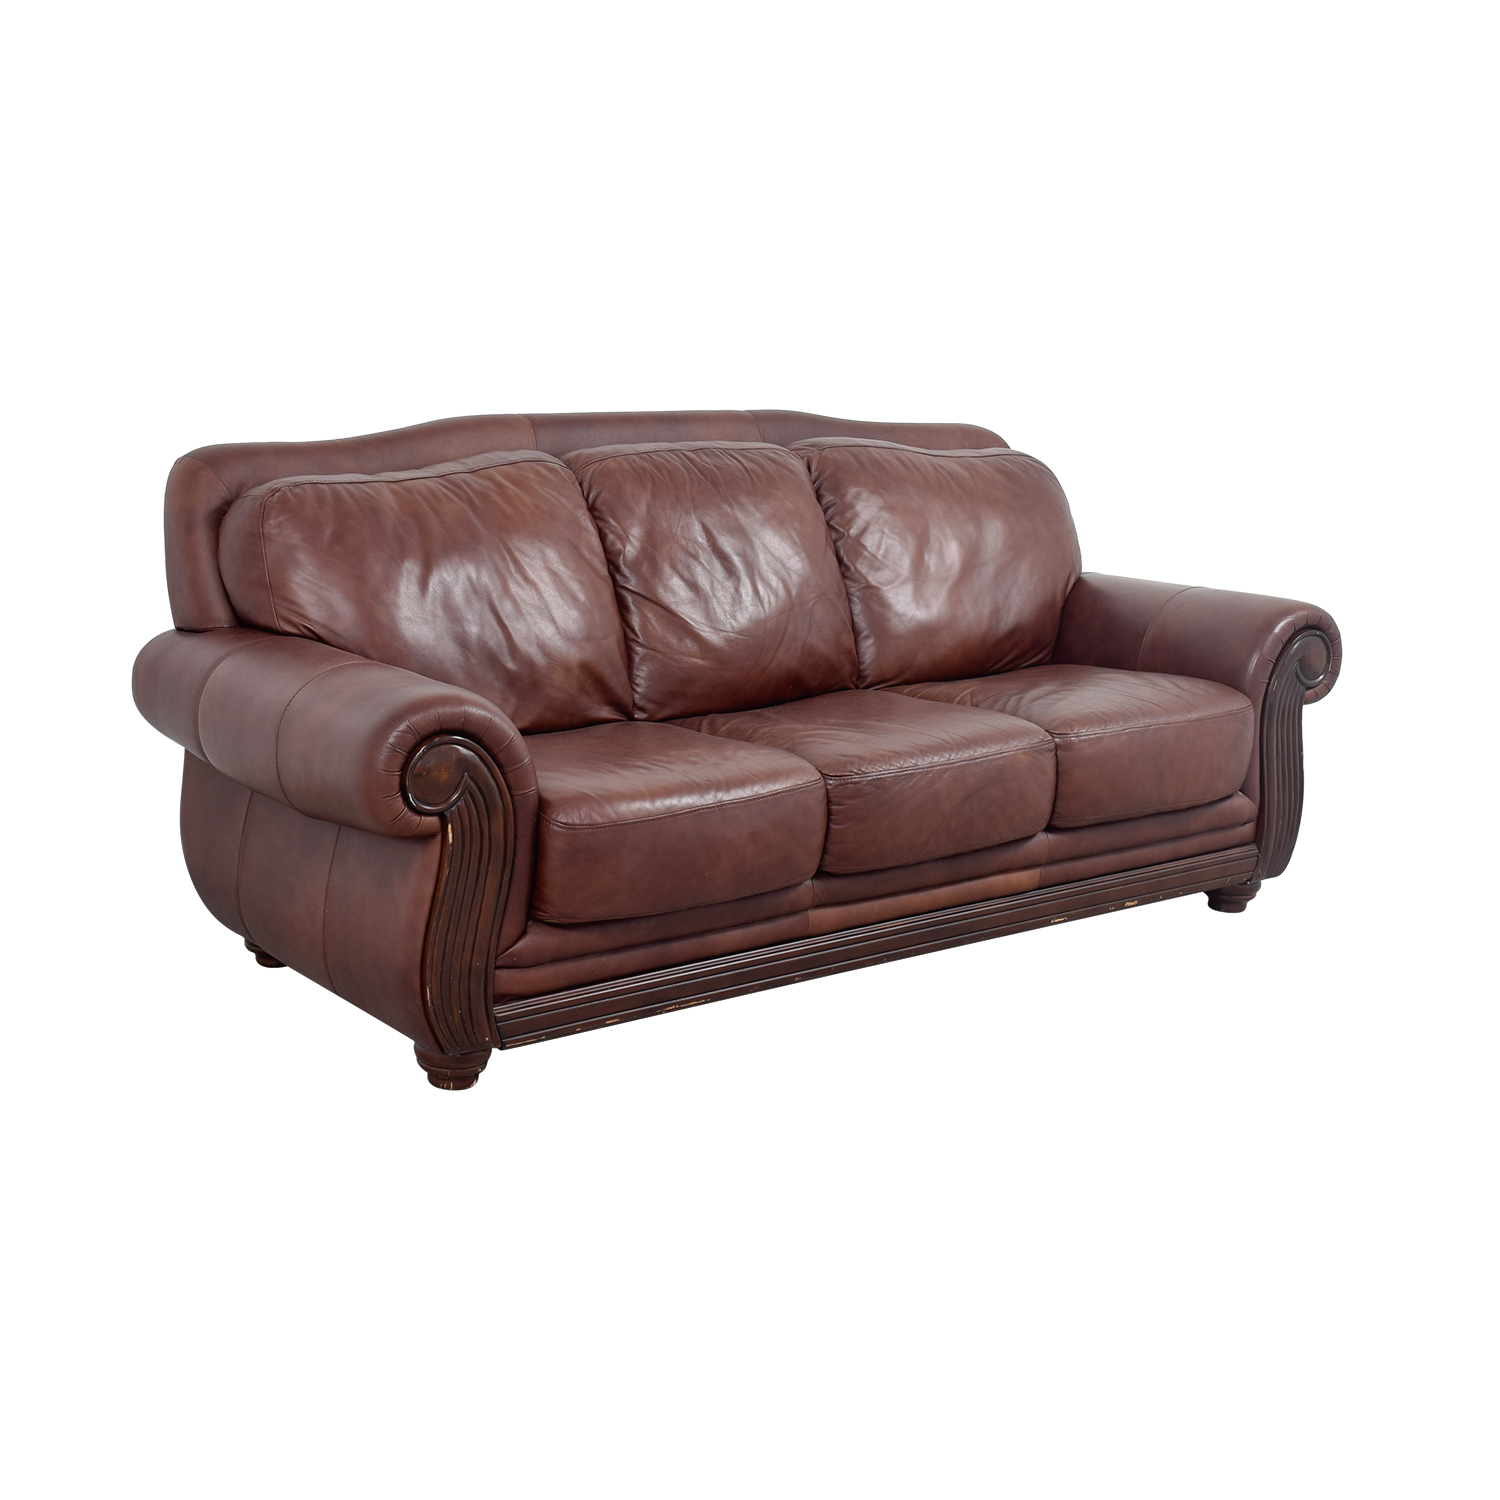 Leather Recliner Sofa Rooms To Go: Rooms To Go Rooms To Go Brown Three -Cushion